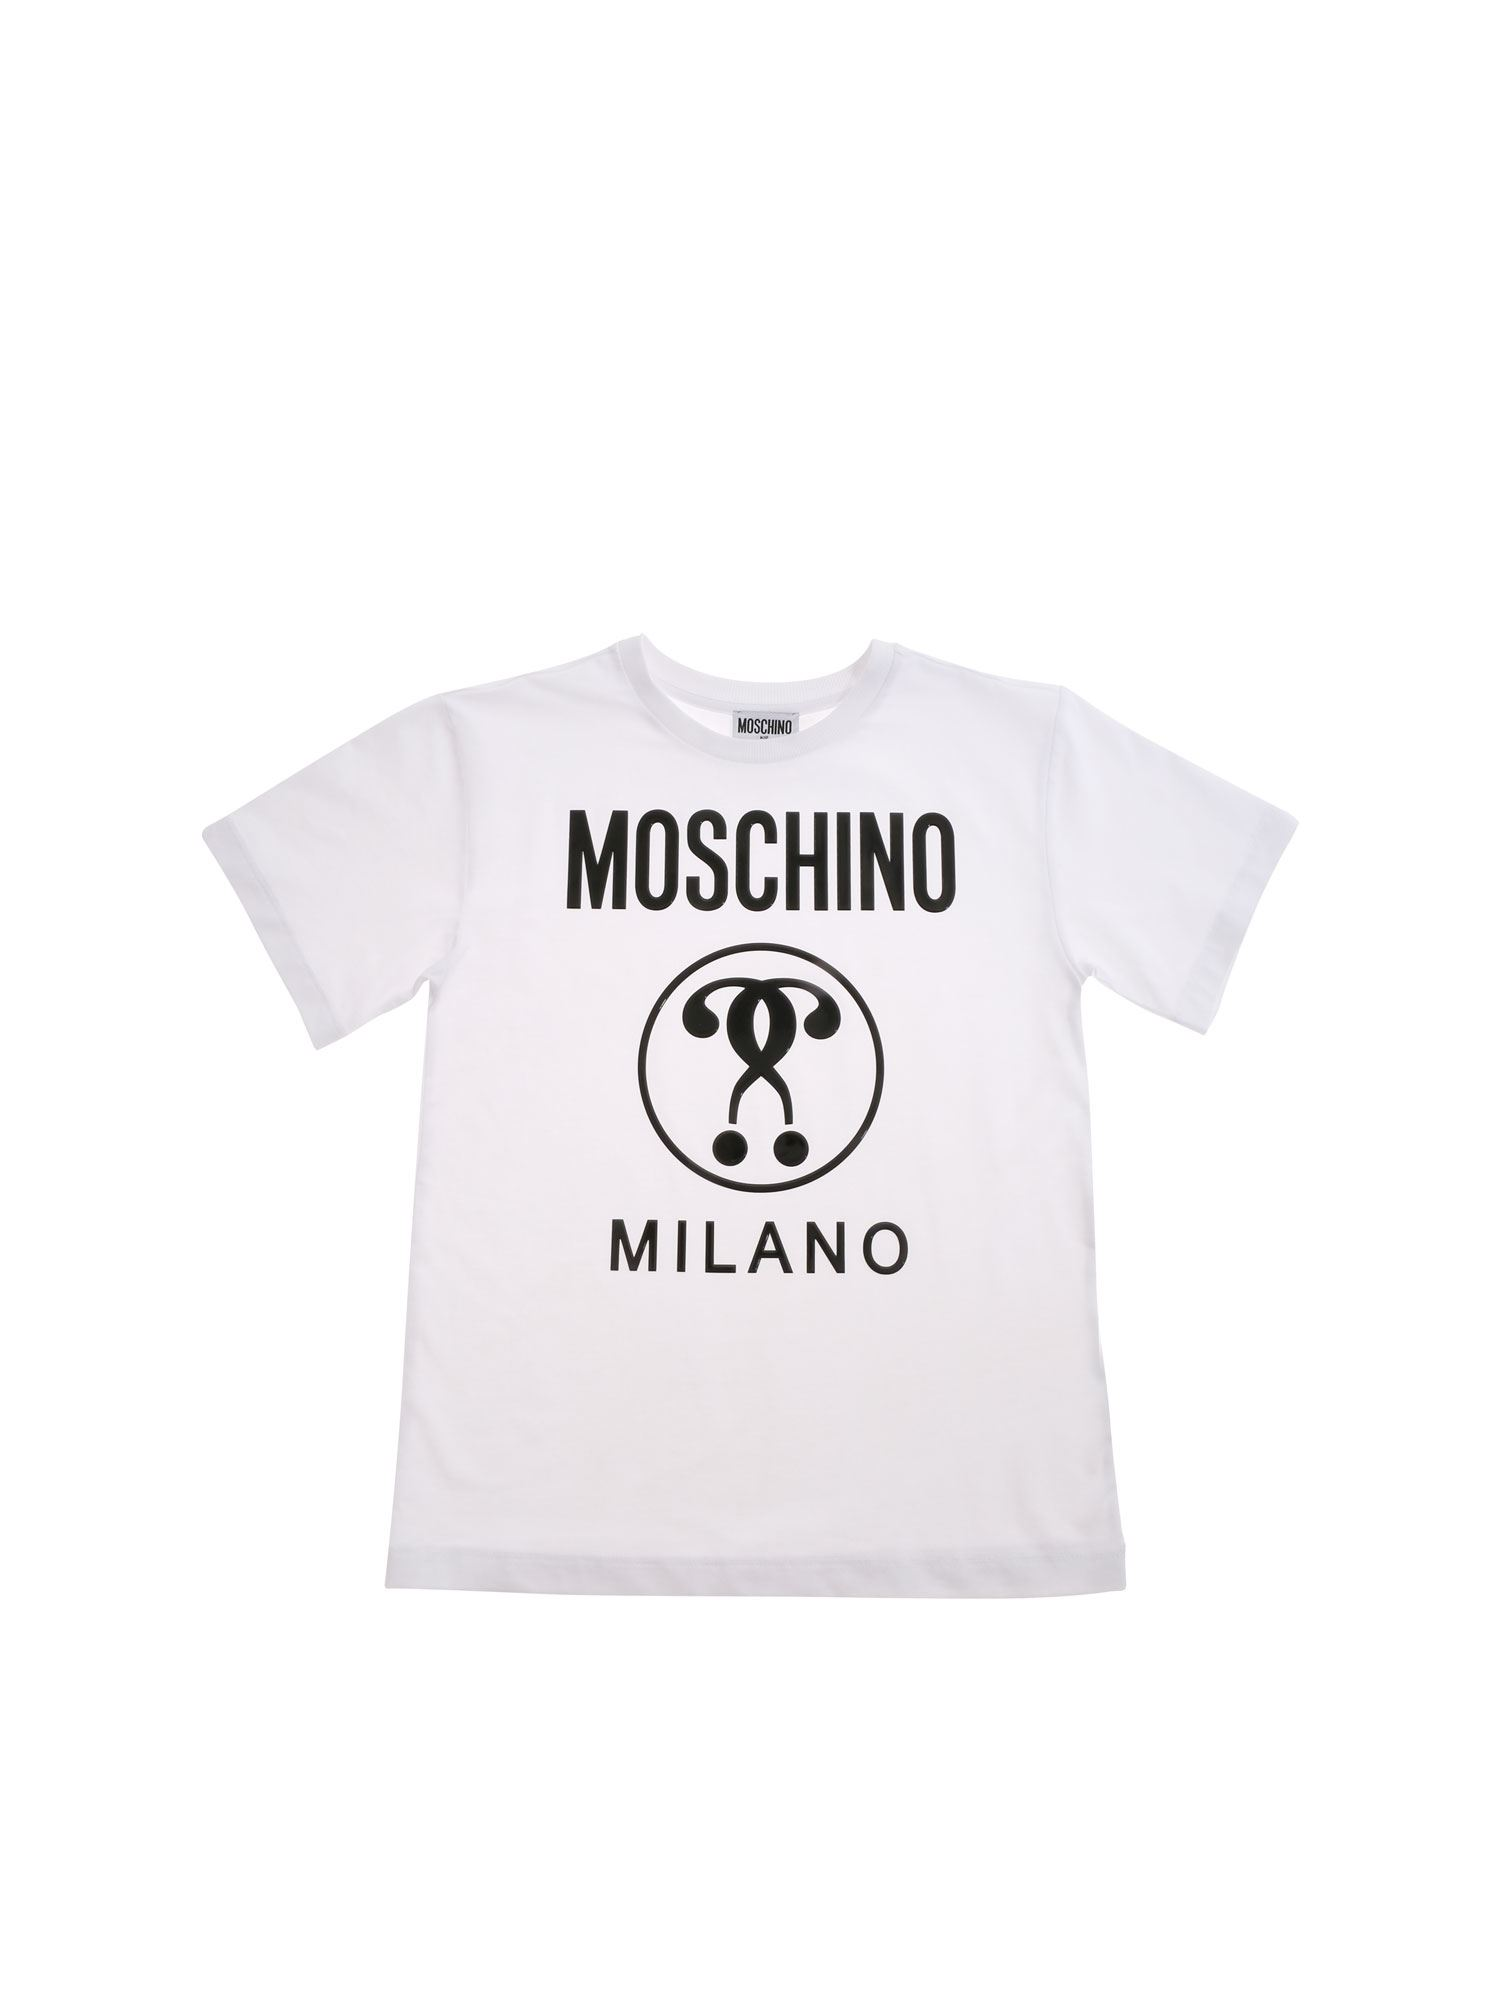 Moschino T-shirts DOUBLE QUESTION LOGO T-SHIRT IN WHITE